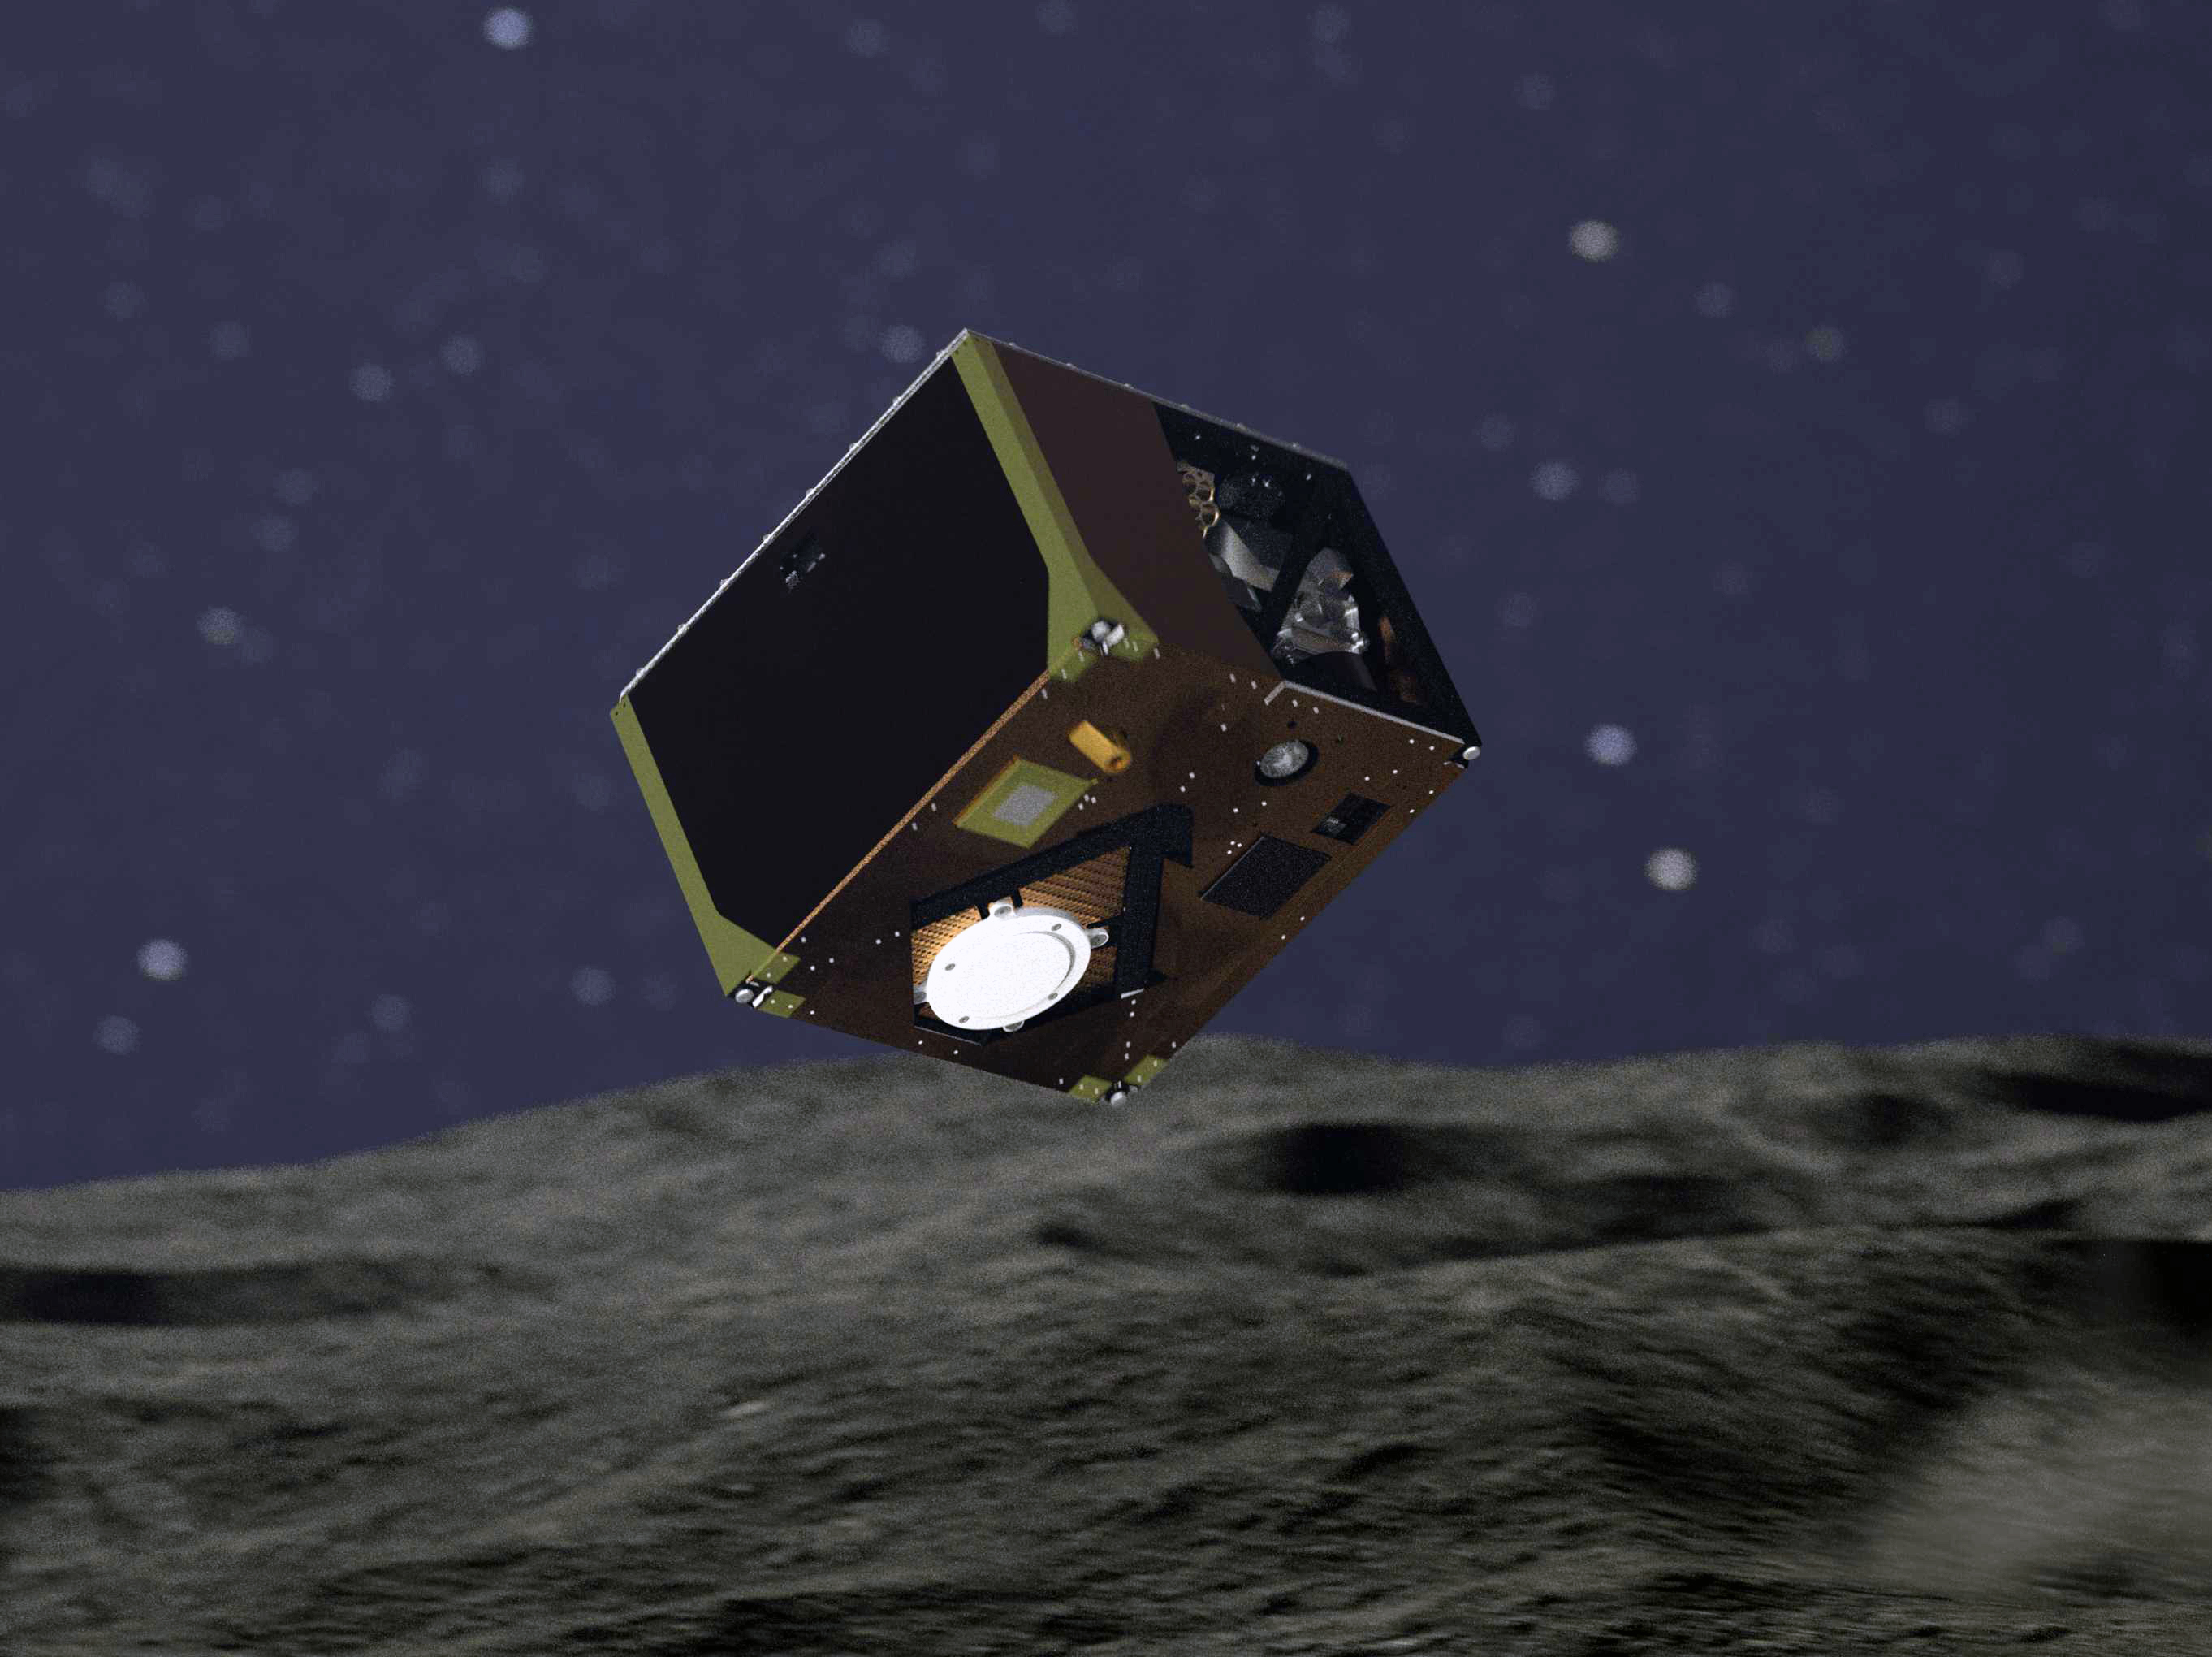 Probe Lands On Ryugu Asteroid In Latest Success For International Group